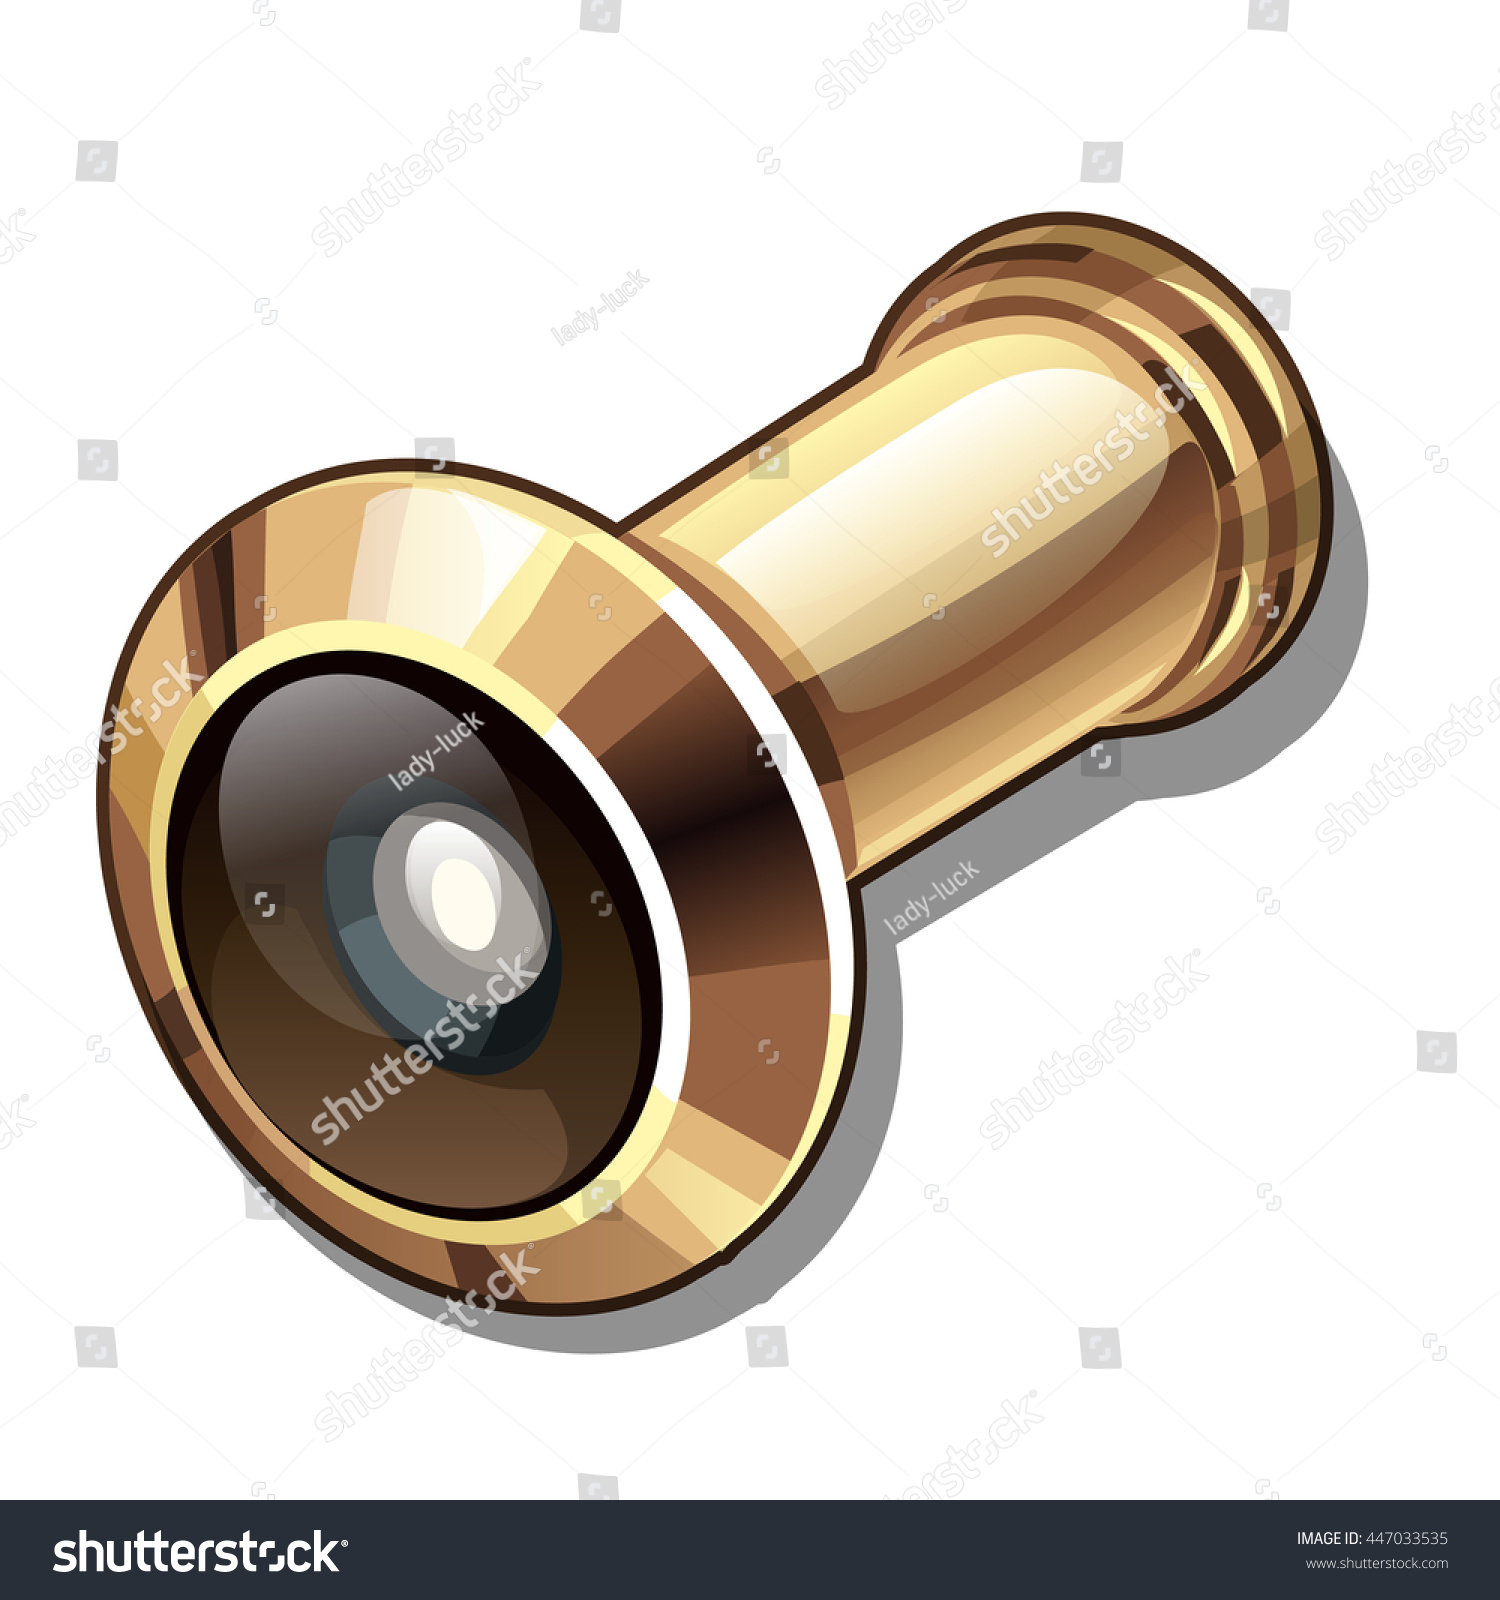 Metallic golden door peephole viewer isolated on white background. Construction and finishing materials. Vector  sc 1 st  Shutterstock & Metallic Golden Door Peephole Viewer Isolated Stock Vector ... pezcame.com